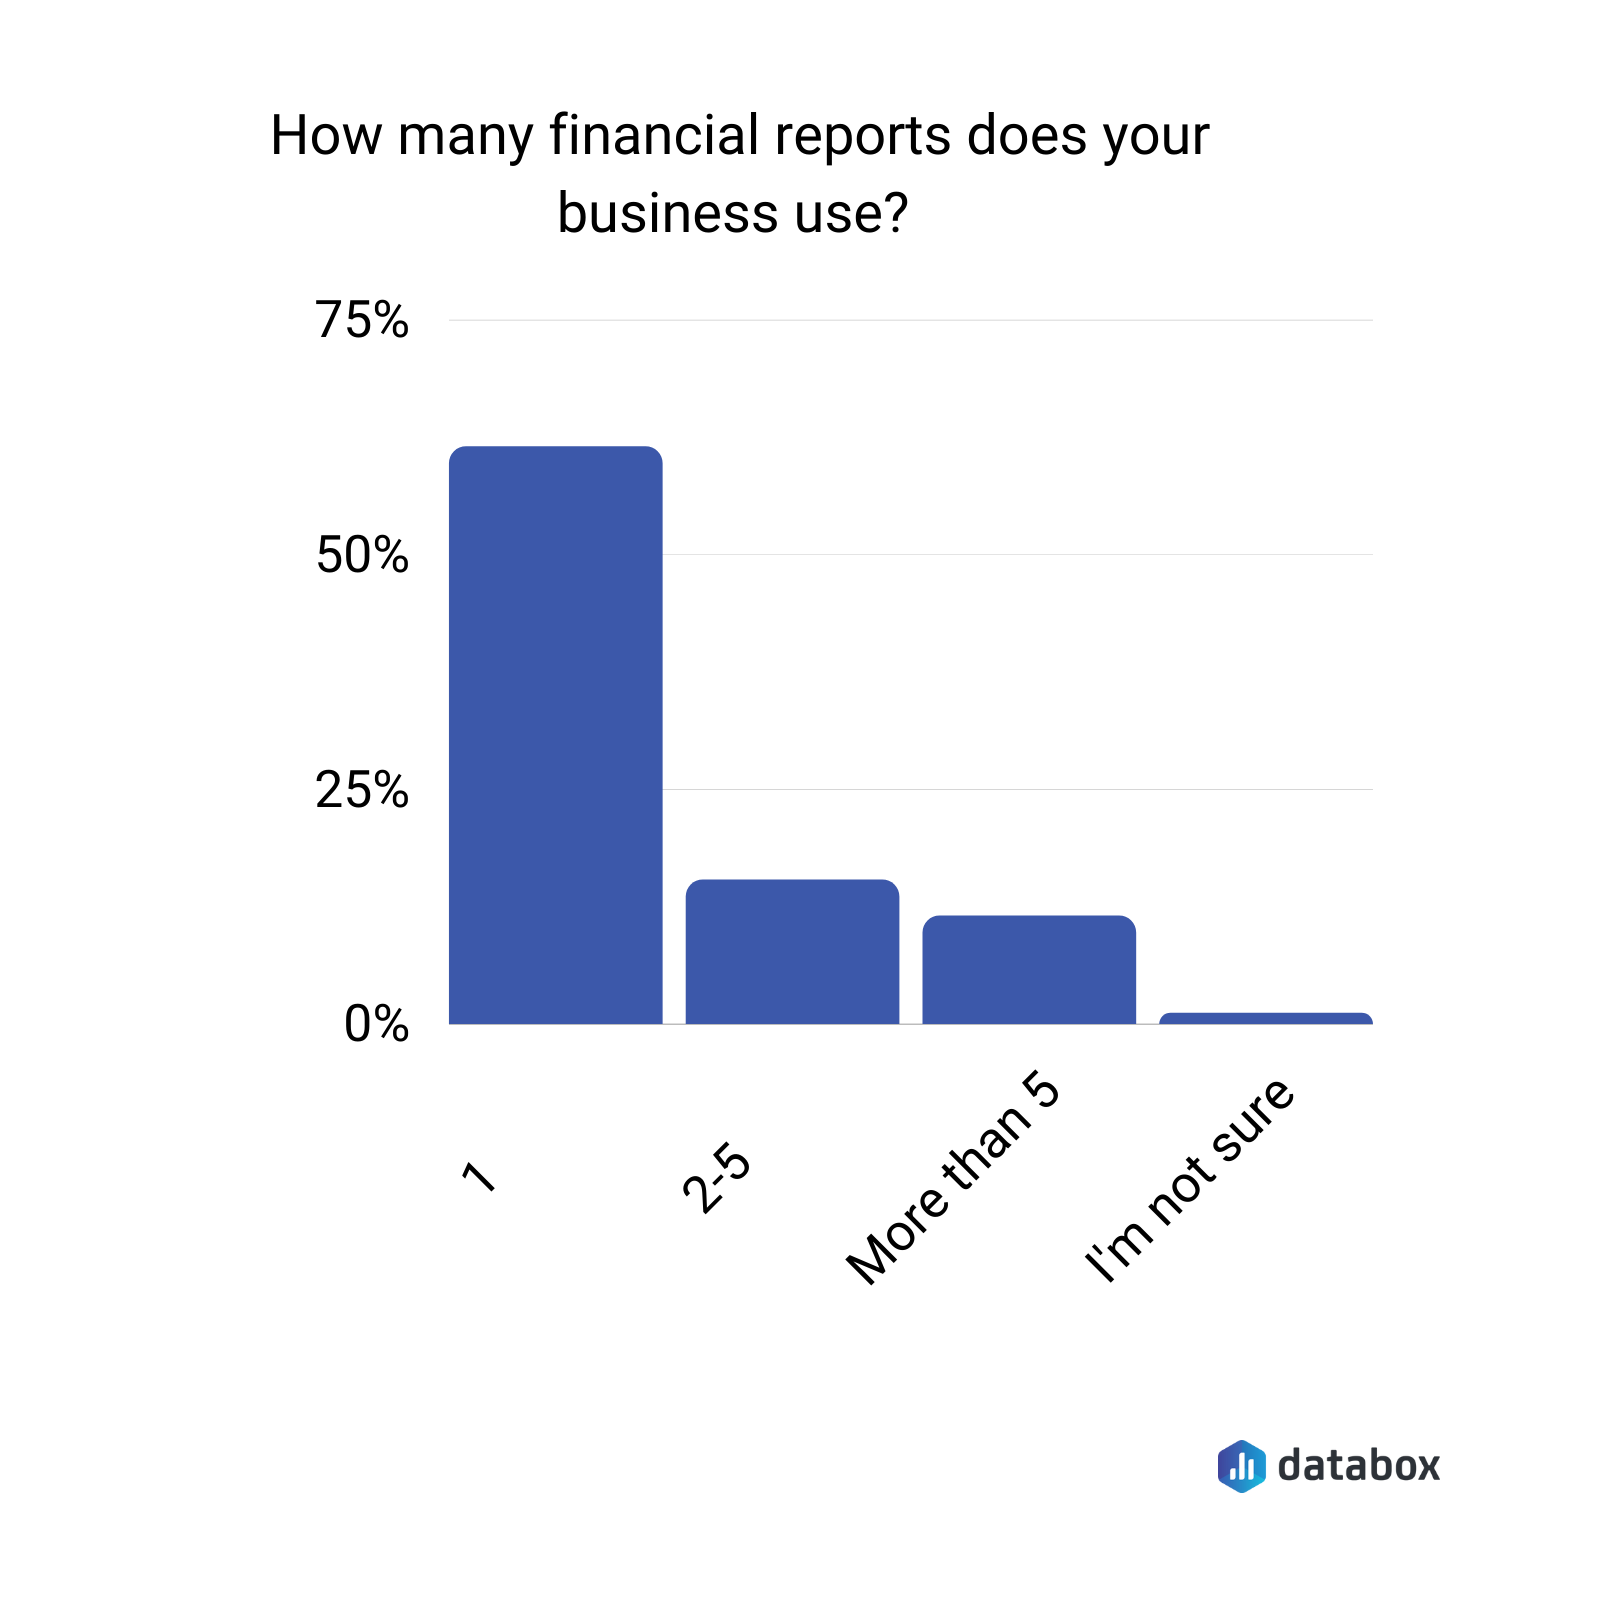 How many financial reports does your business use?